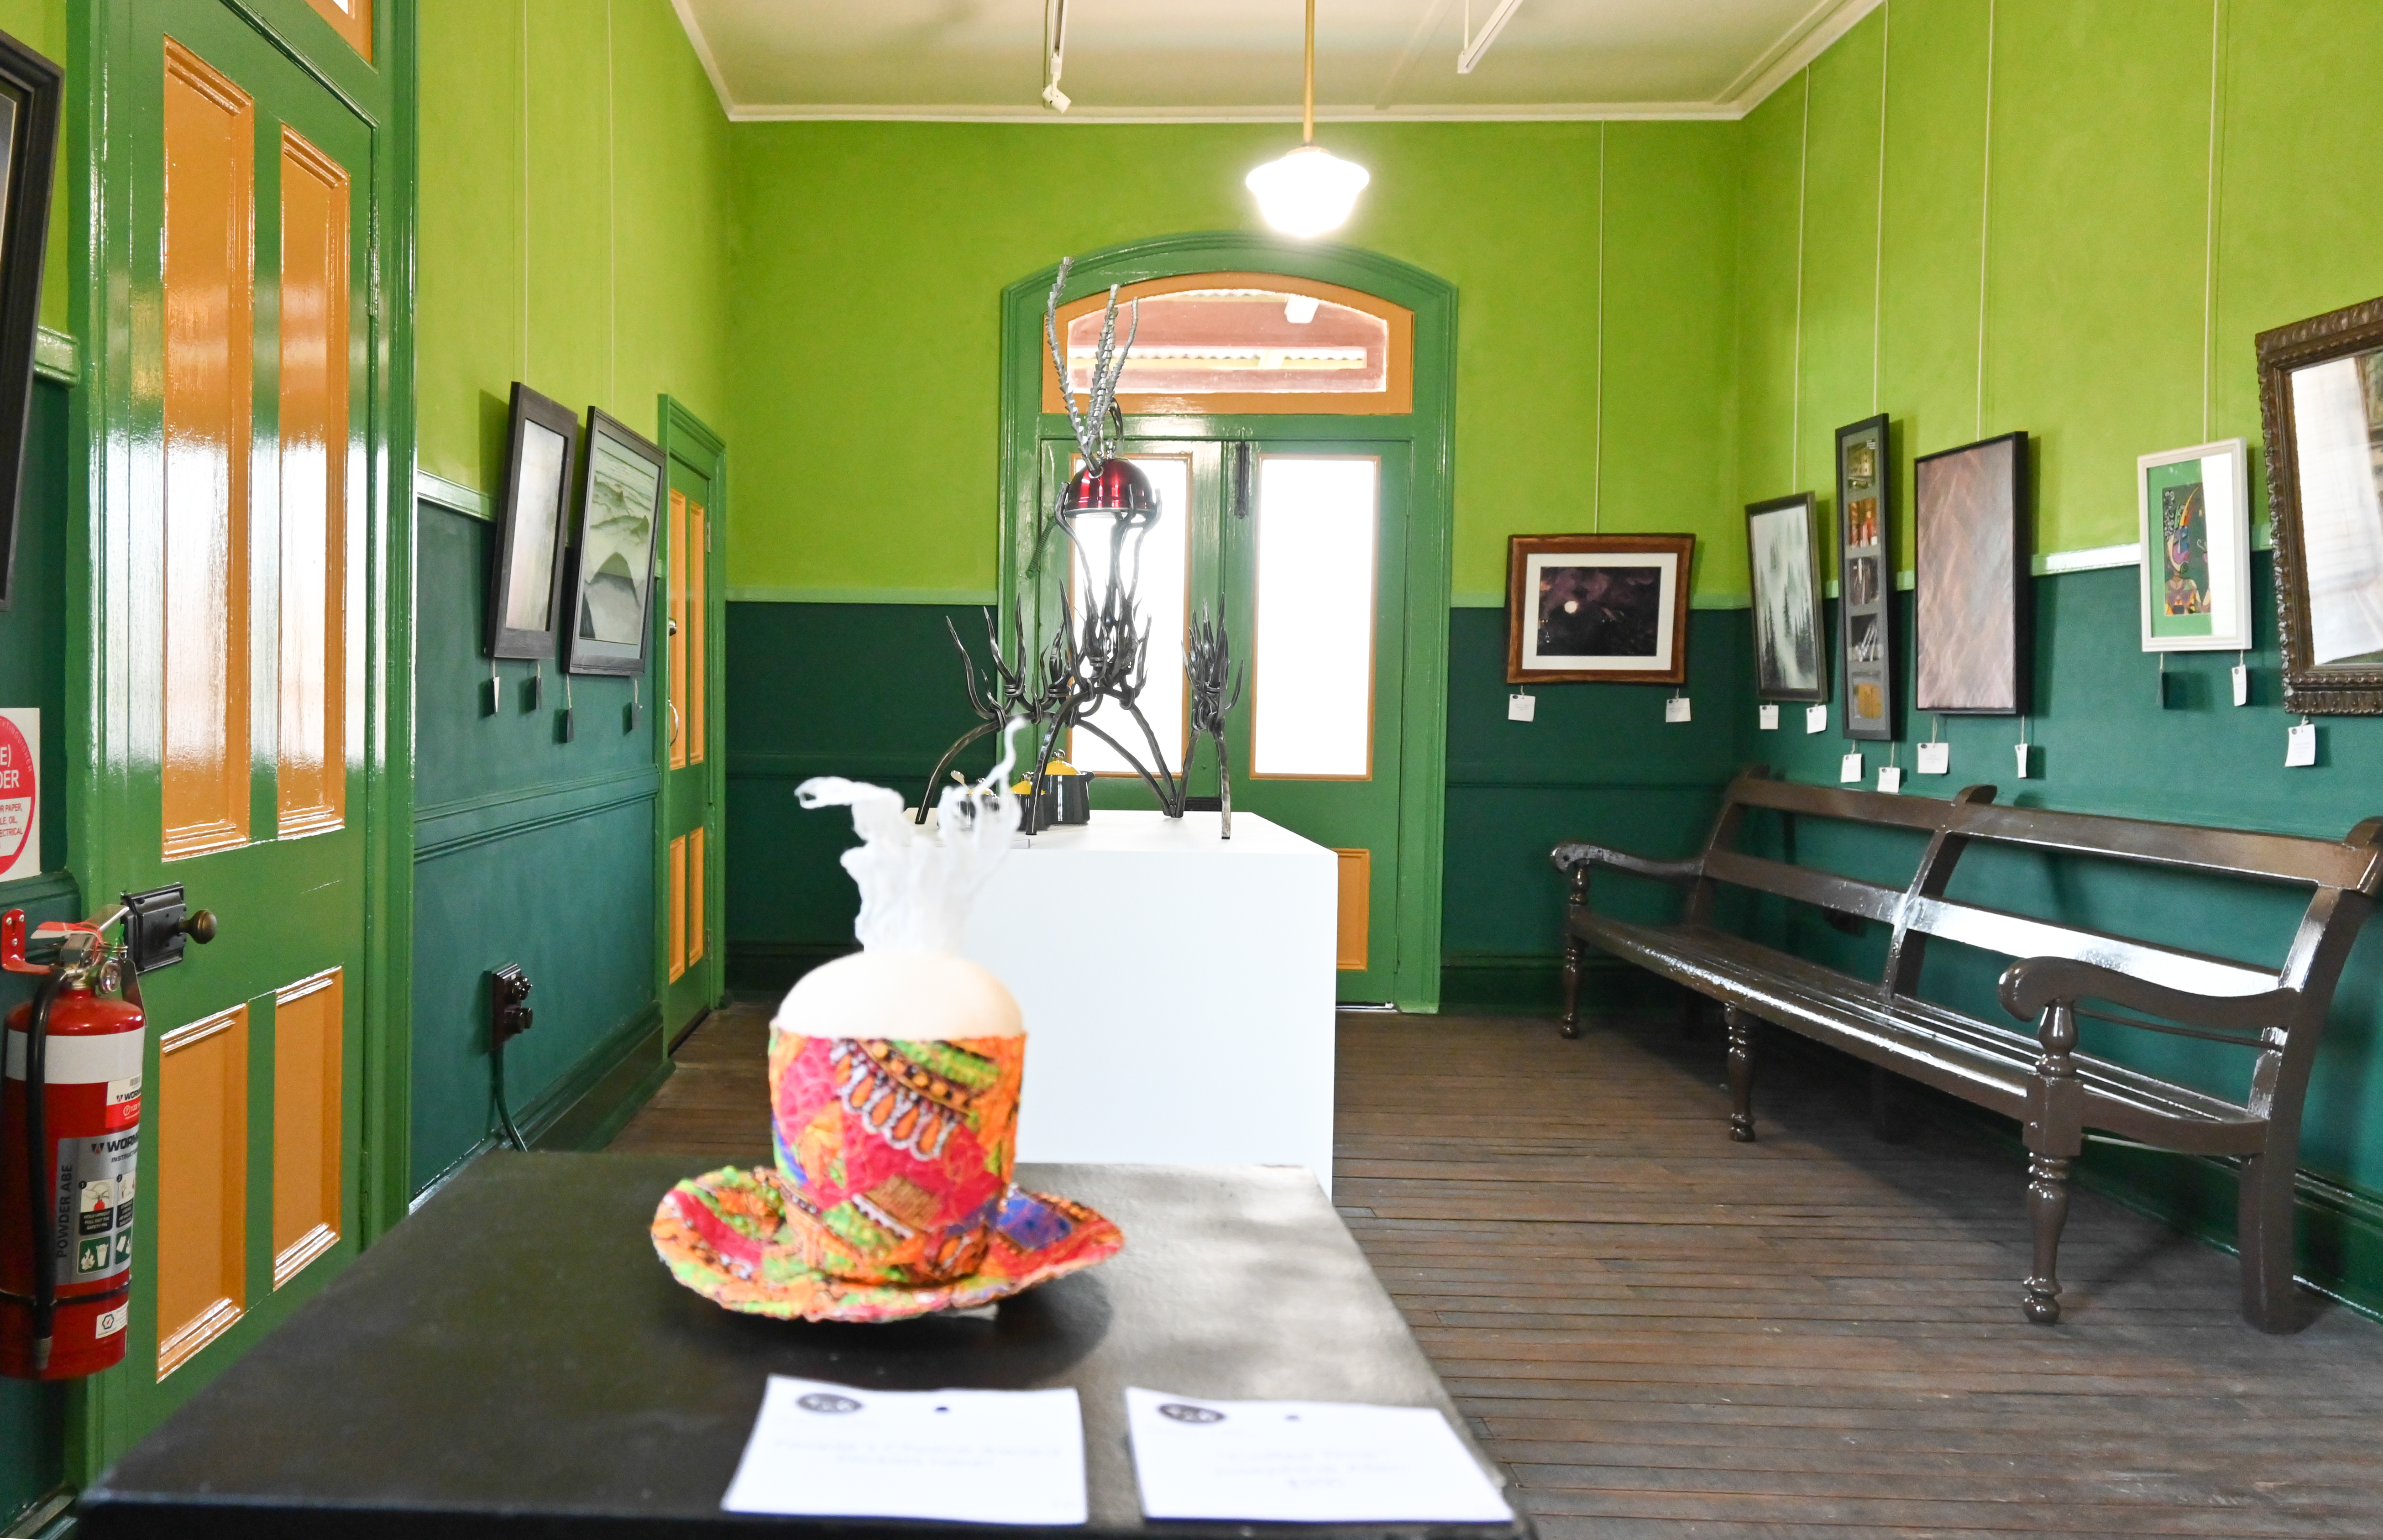 Inside the gallery with heritage coloured walls and artworks ion display. Photography of the launch of Textures of One on Blayney Station for Arts OutWest by Zenio Lapka.